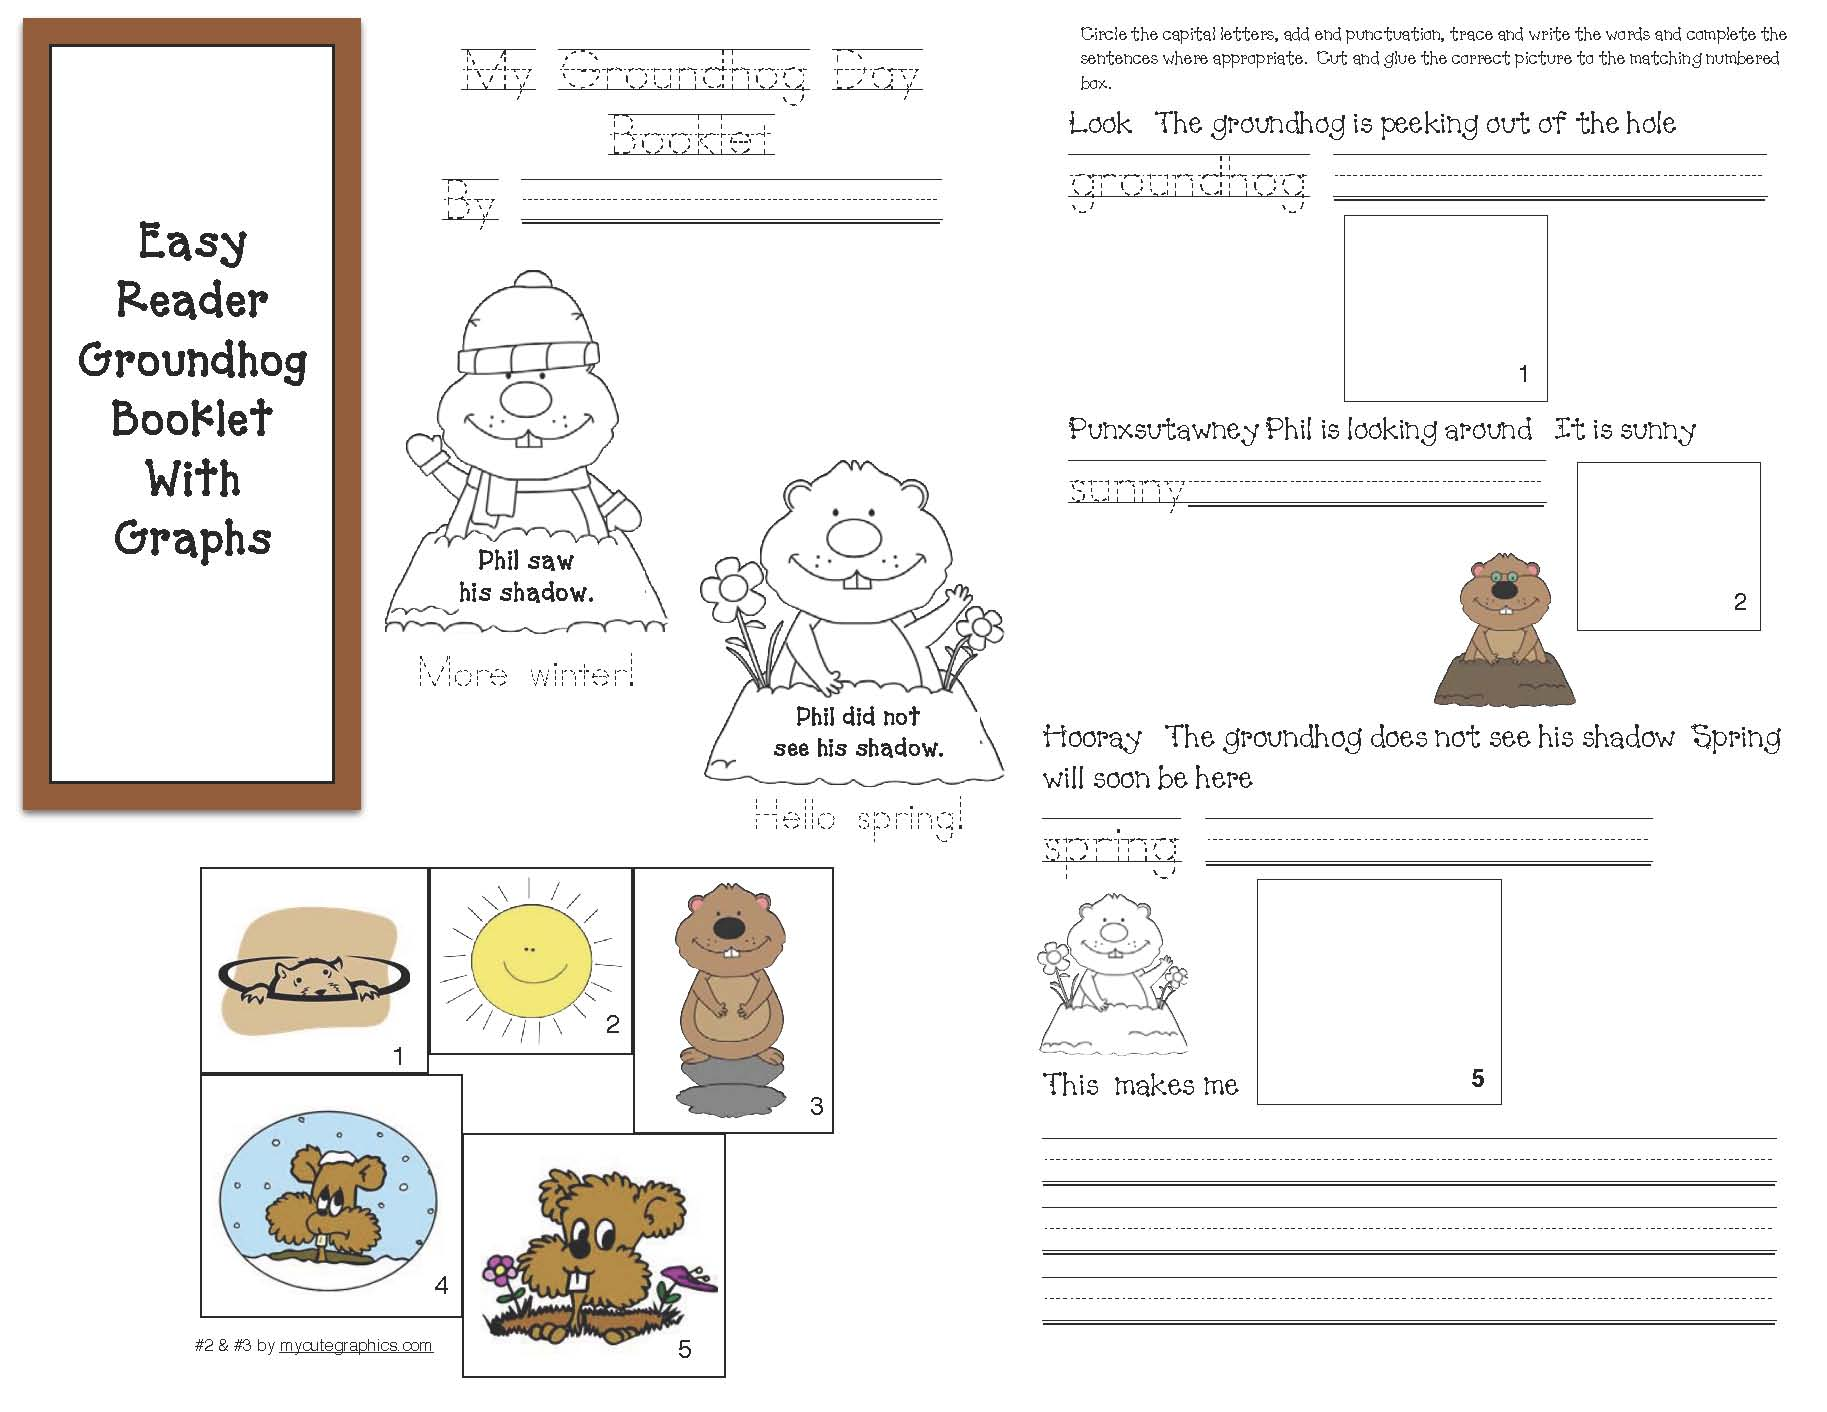 Free common core lessons for kindergarten and 1st grade, pentagon, hexagon, octagon, shape activities, shape booklet, shadow activities, shadow lessons, groundhog lessons, groundhog activities,